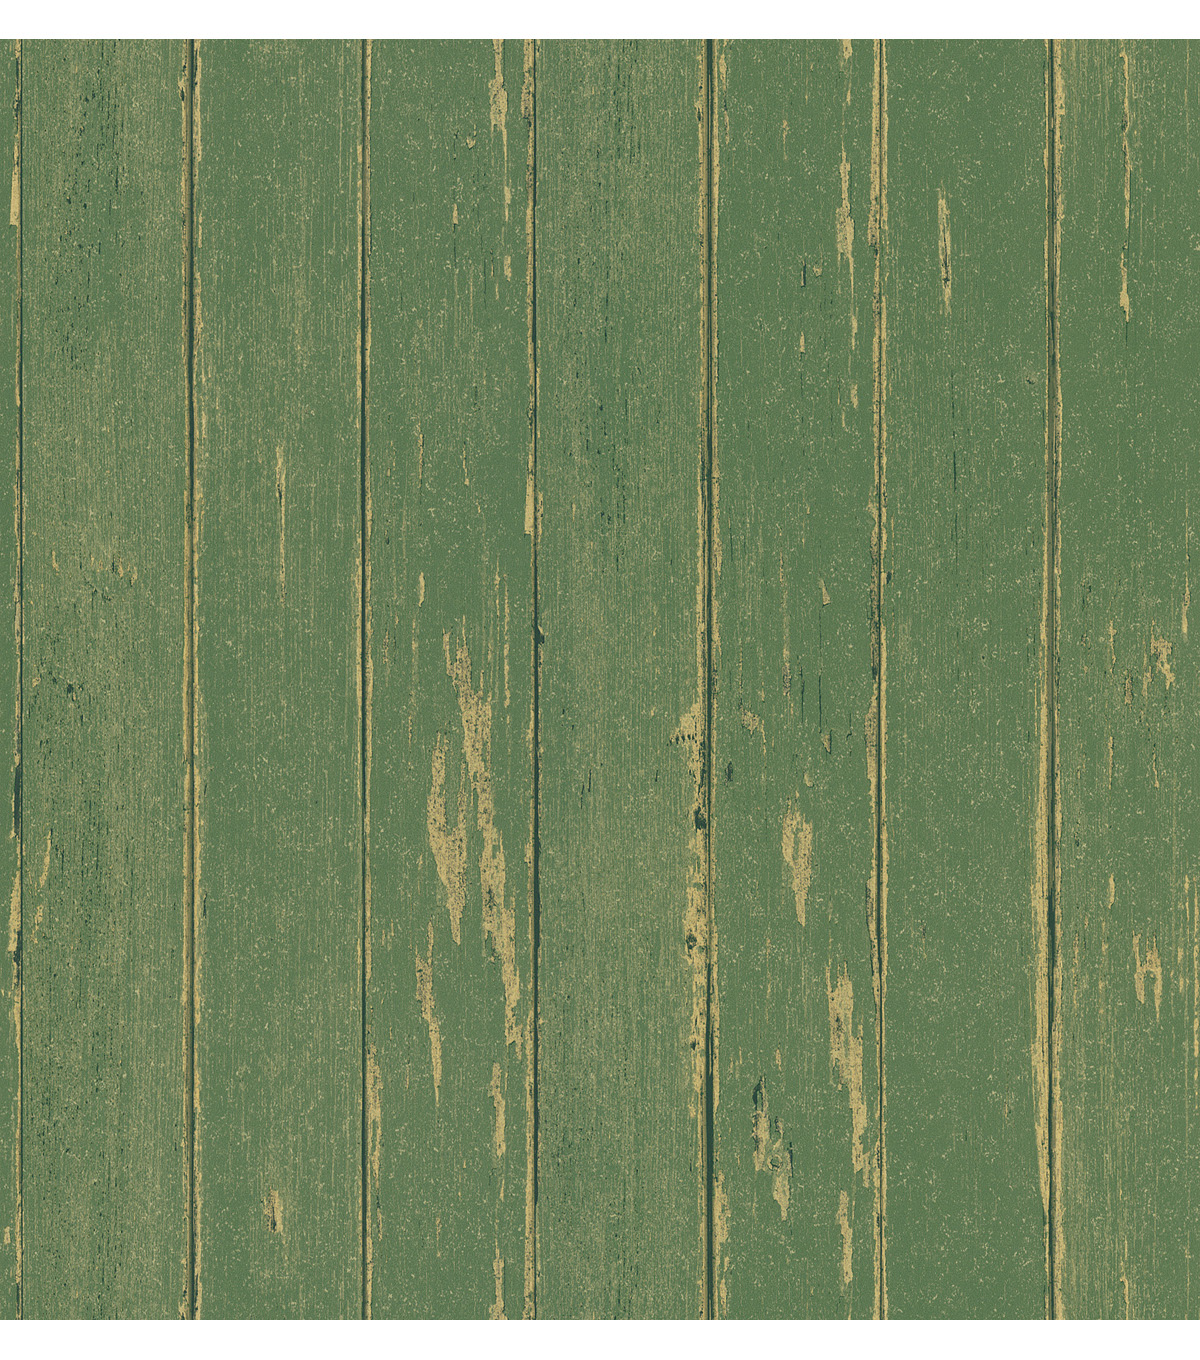 Yarmouth Green Rustic Wood Paneling Wallpaper Sample